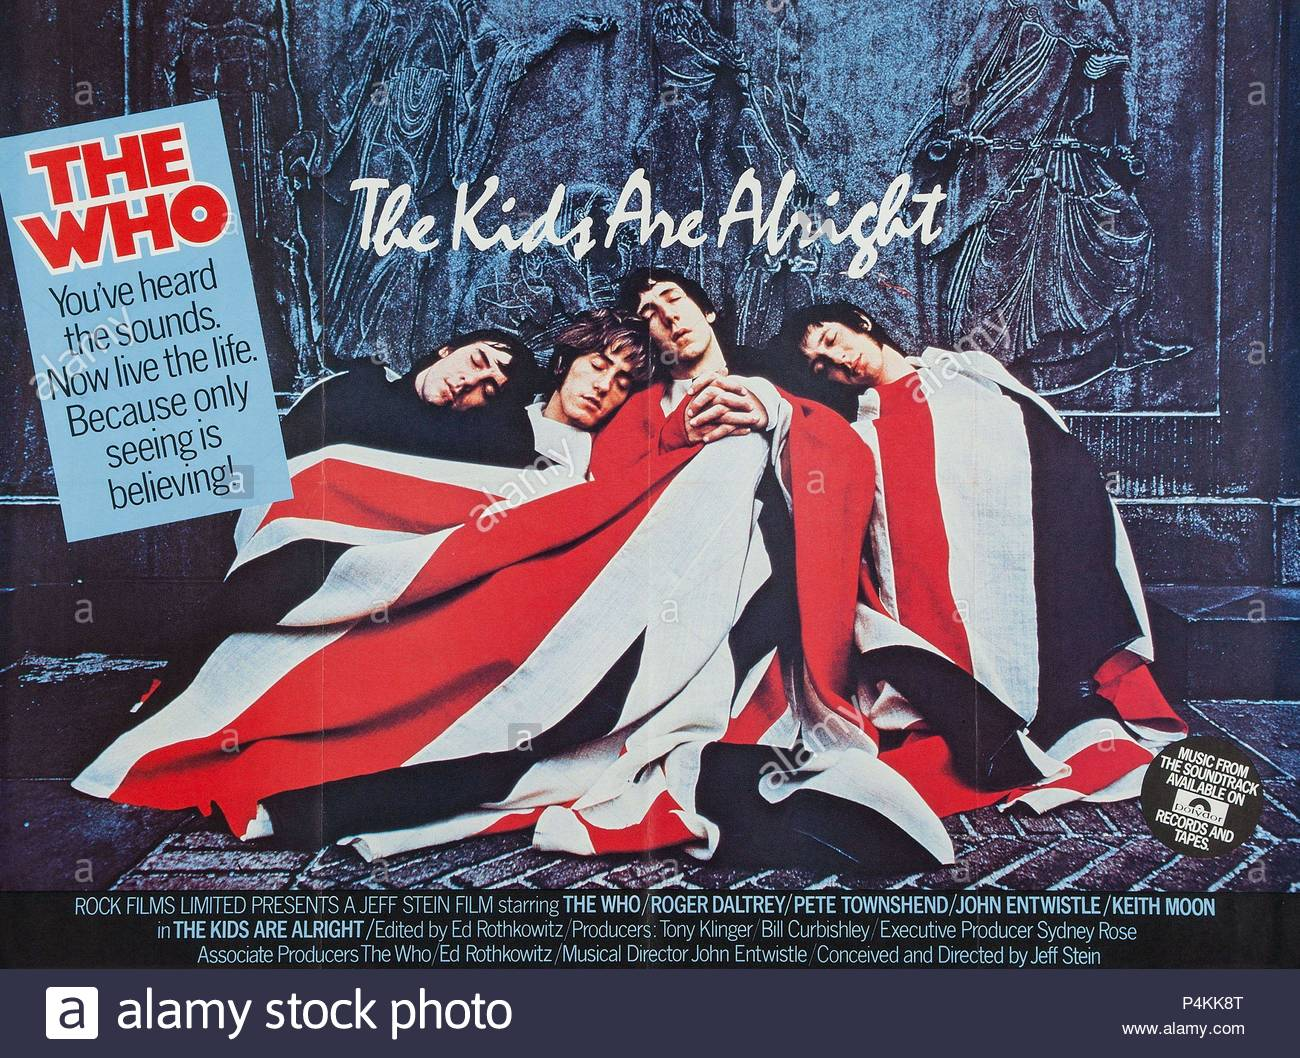 -title-kids-are-alright-the-film-director-jeff-stein-year-1979-credit-the-who-films-album-P4KK8T.